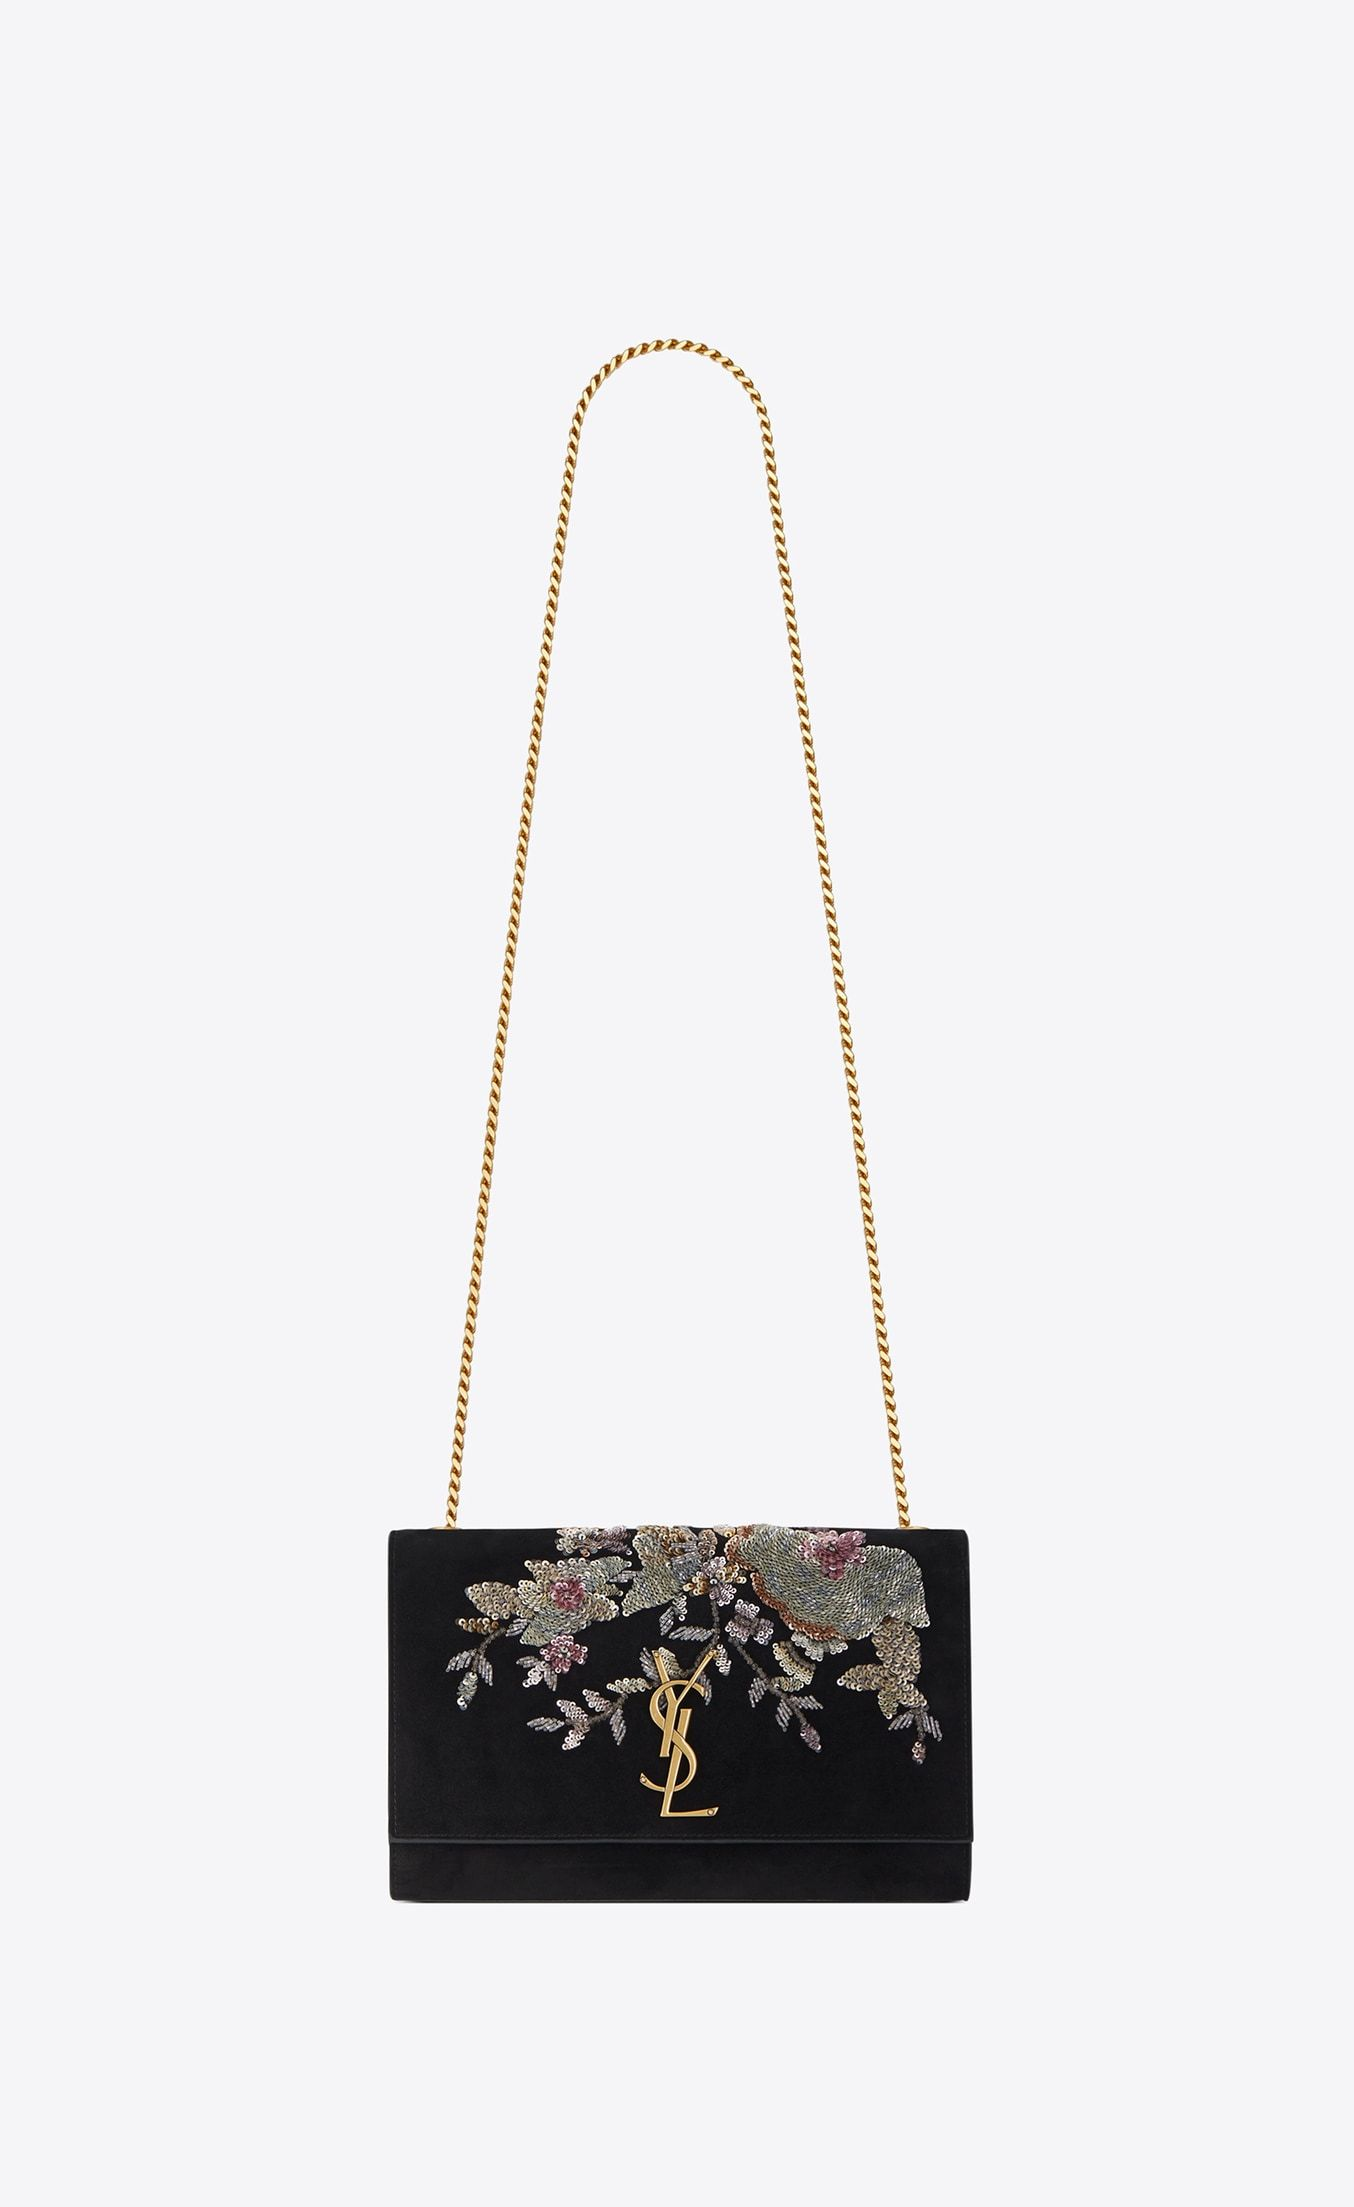 8f0bc1b9b1ca Saint Laurent Medium KATE Chain Bag In Black Suede Embroidered With Sequins  And Multicolored Crystals